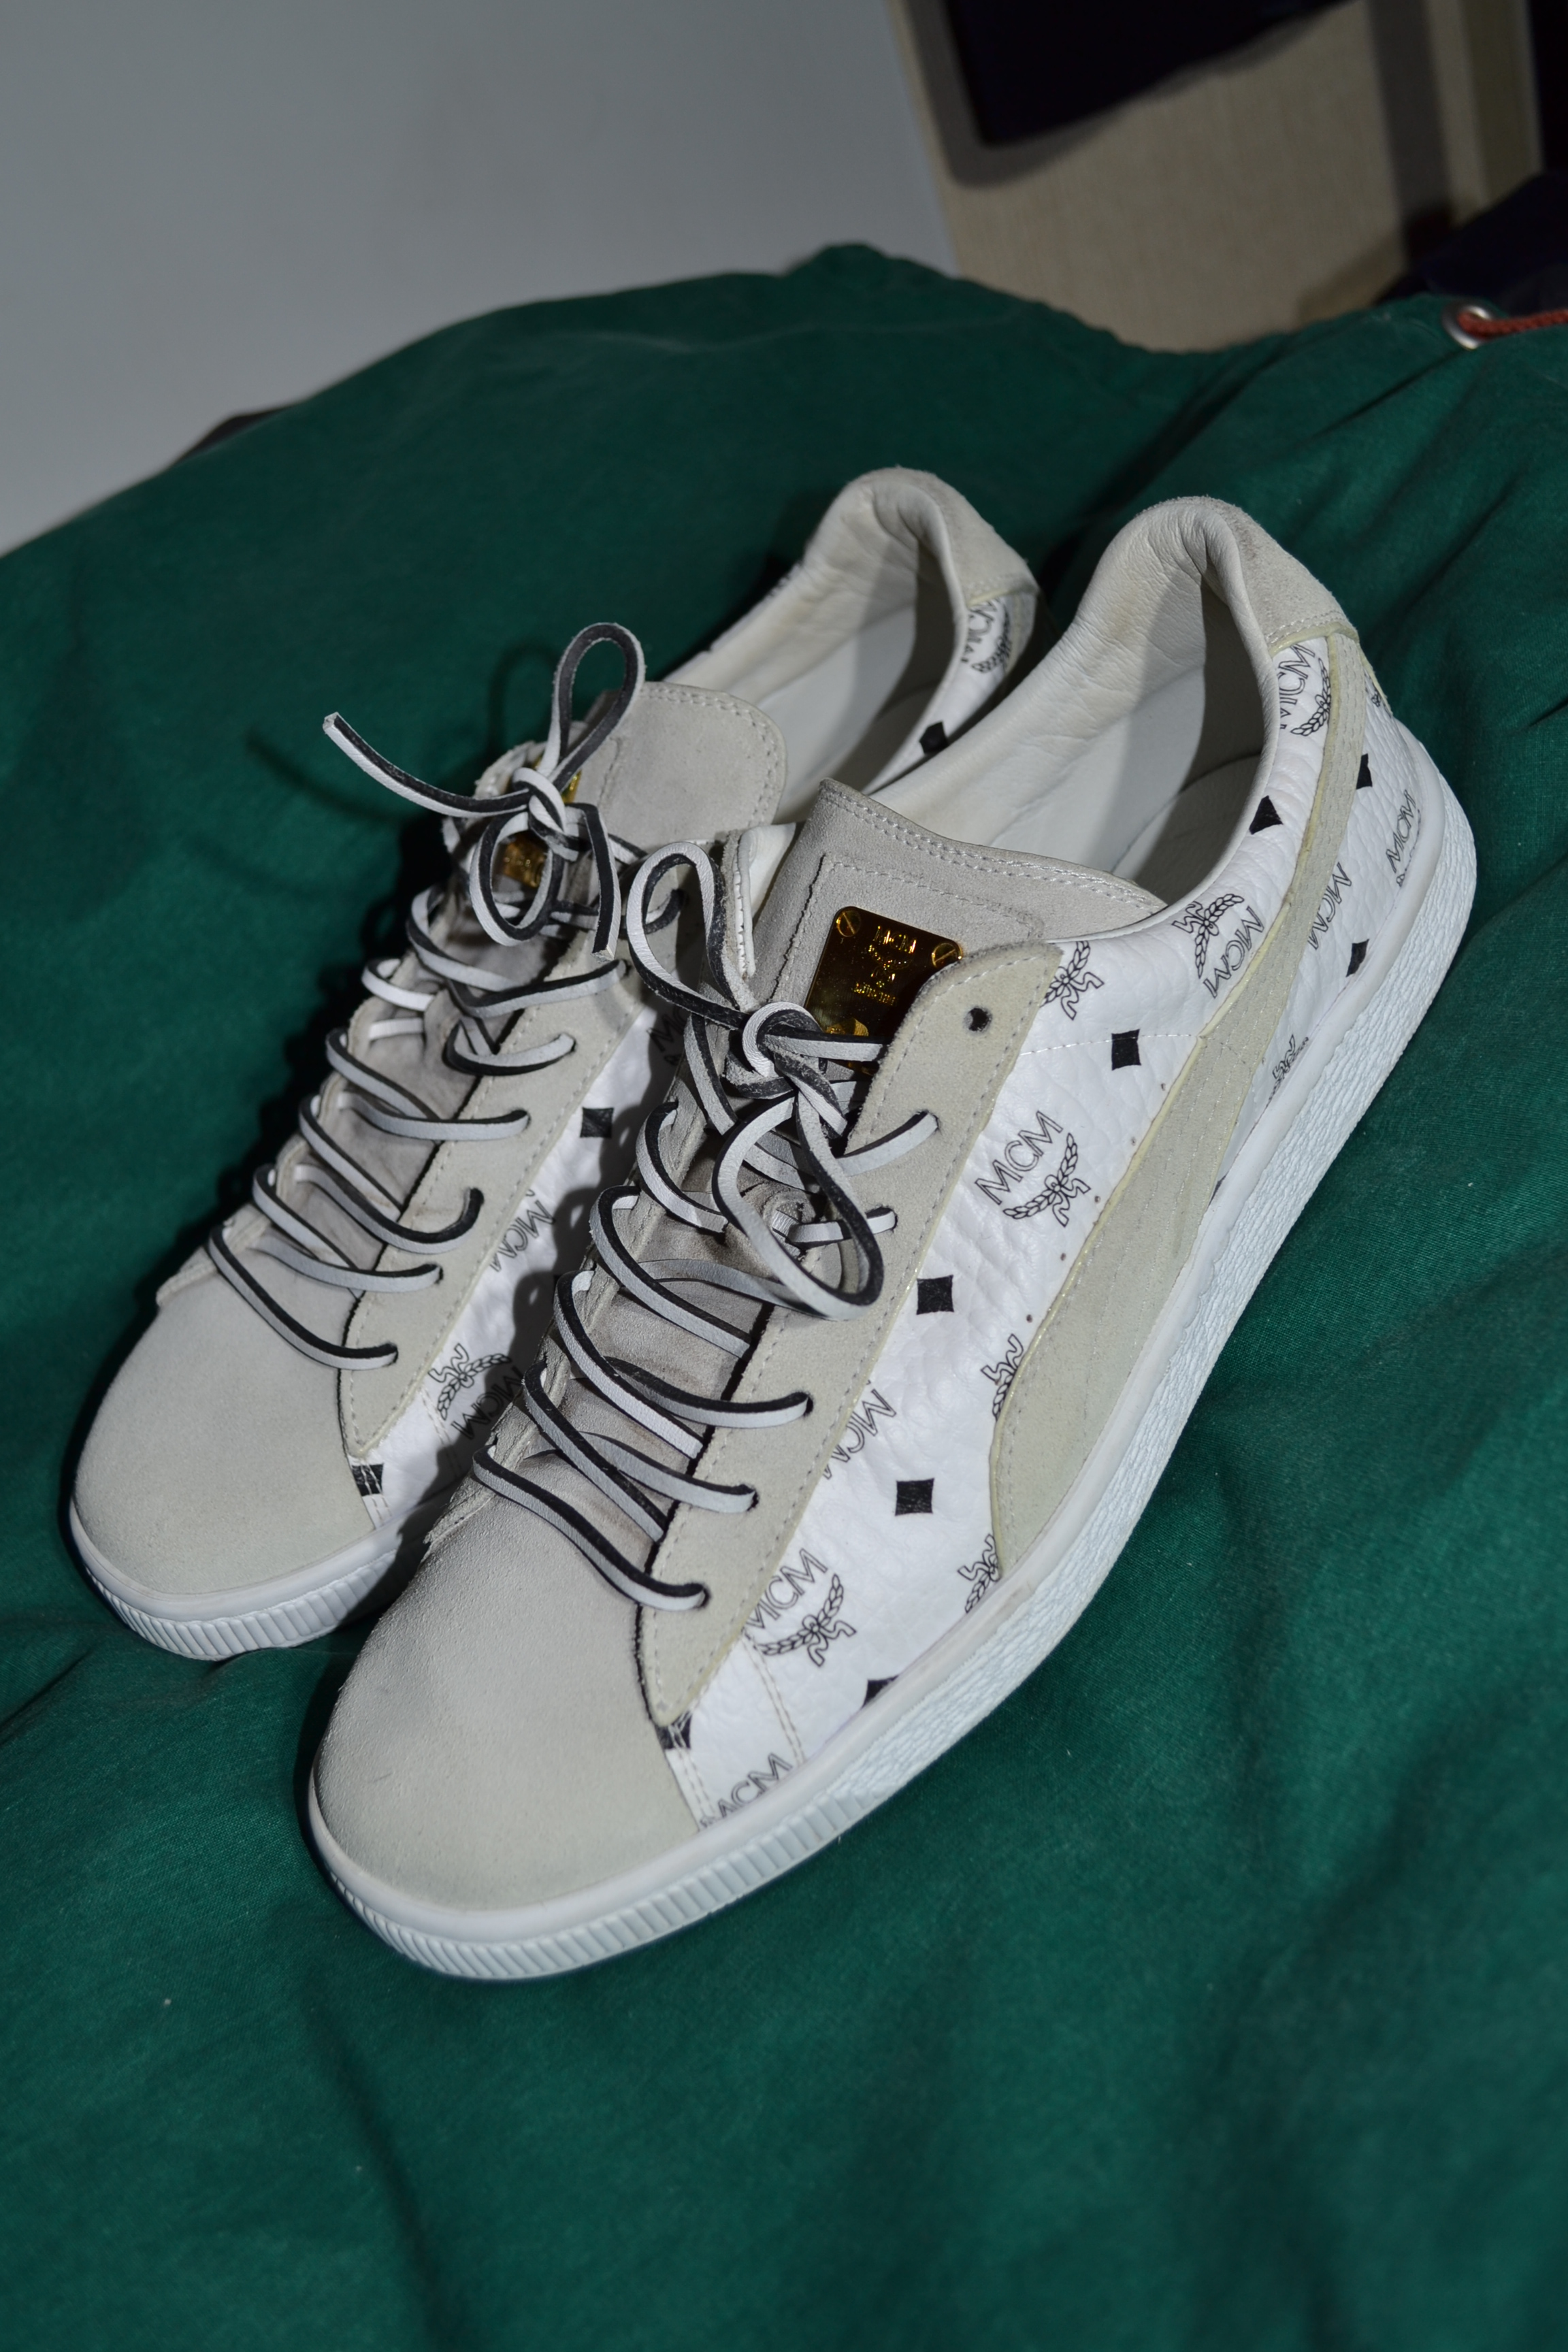 new concept b26a7 355e8 Rare Puma x MCM White Leather Made in Italy Suede Sneakers Shoes Limited  Edition Monogram 10 UK 11 US